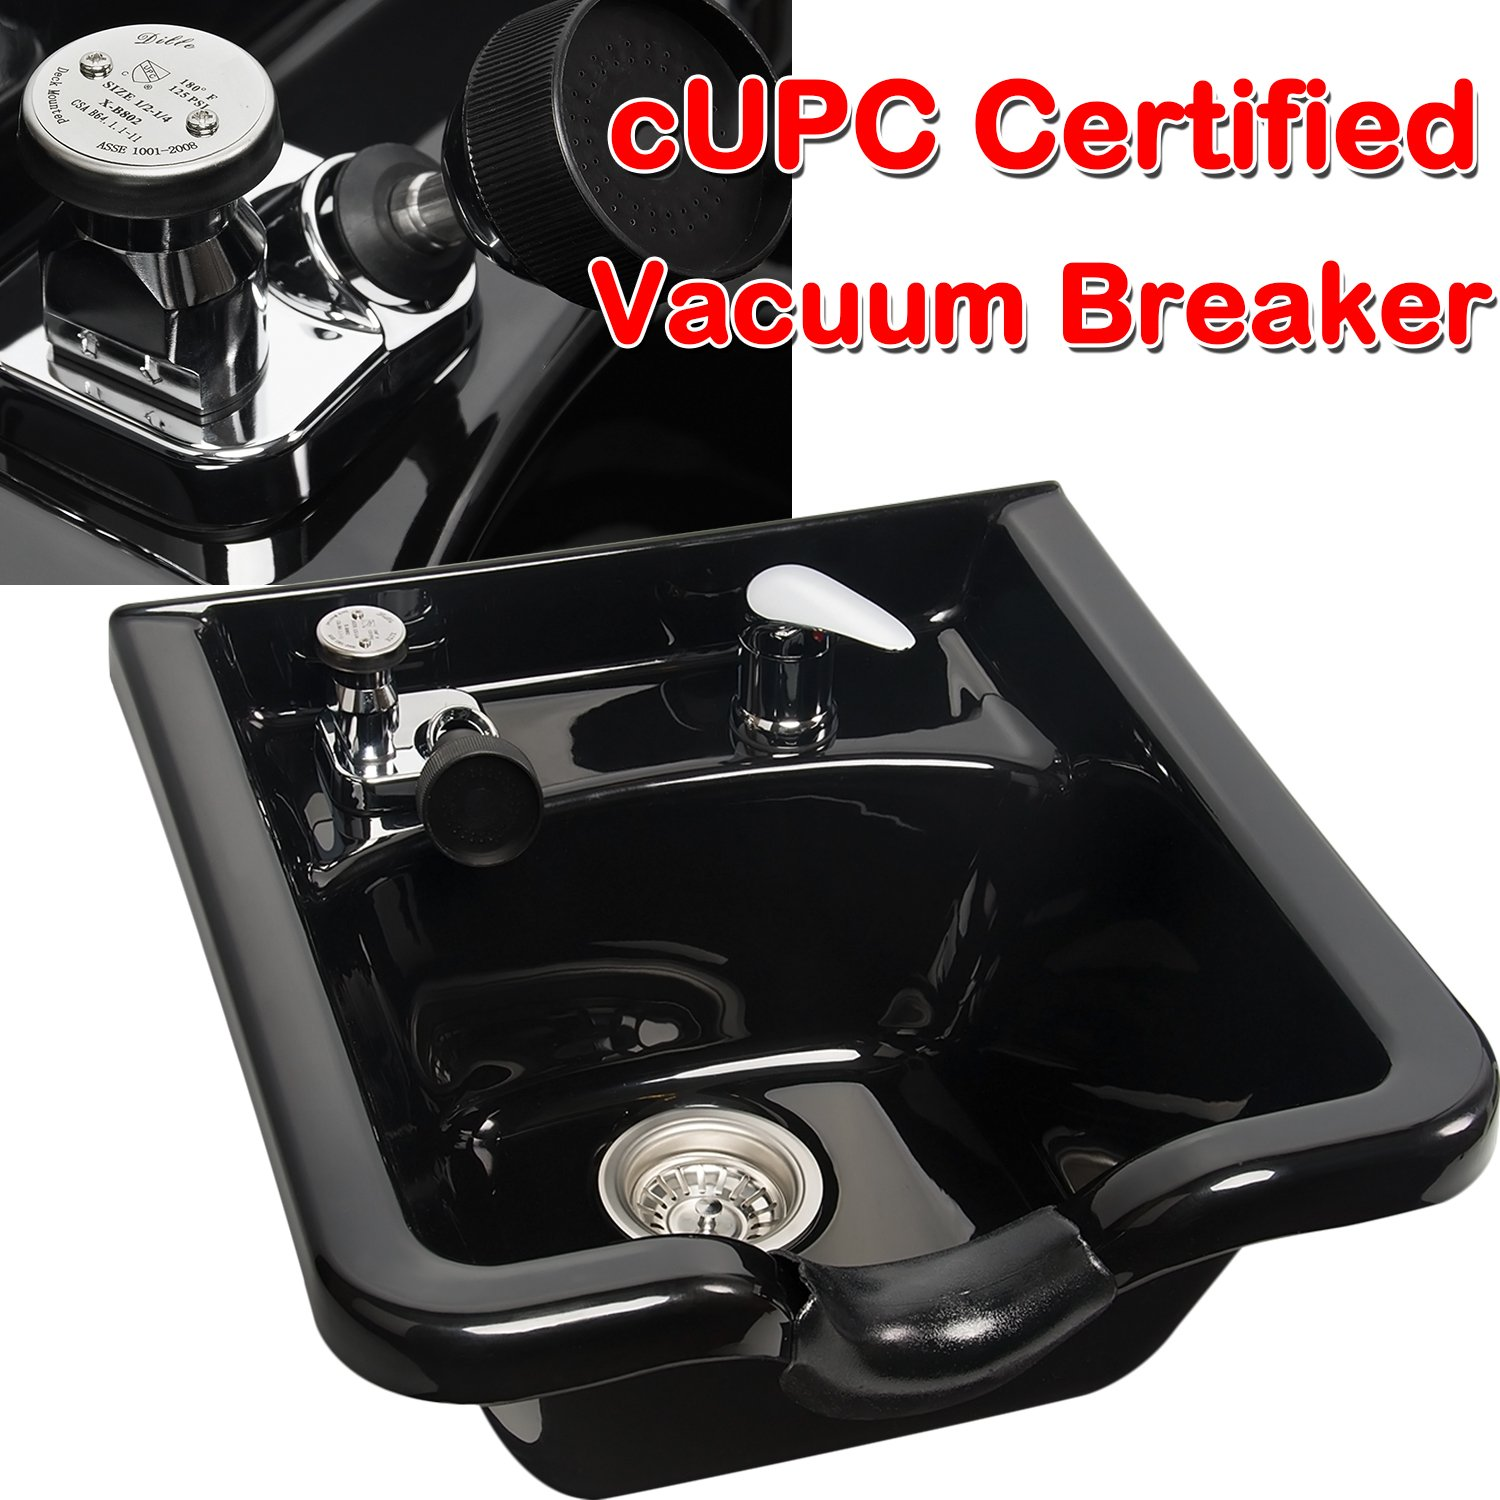 cUPC Vacuum Breaker Shampoo Bowl Hair Sink Stainless Drainage Neck Rest Hair Trap Included